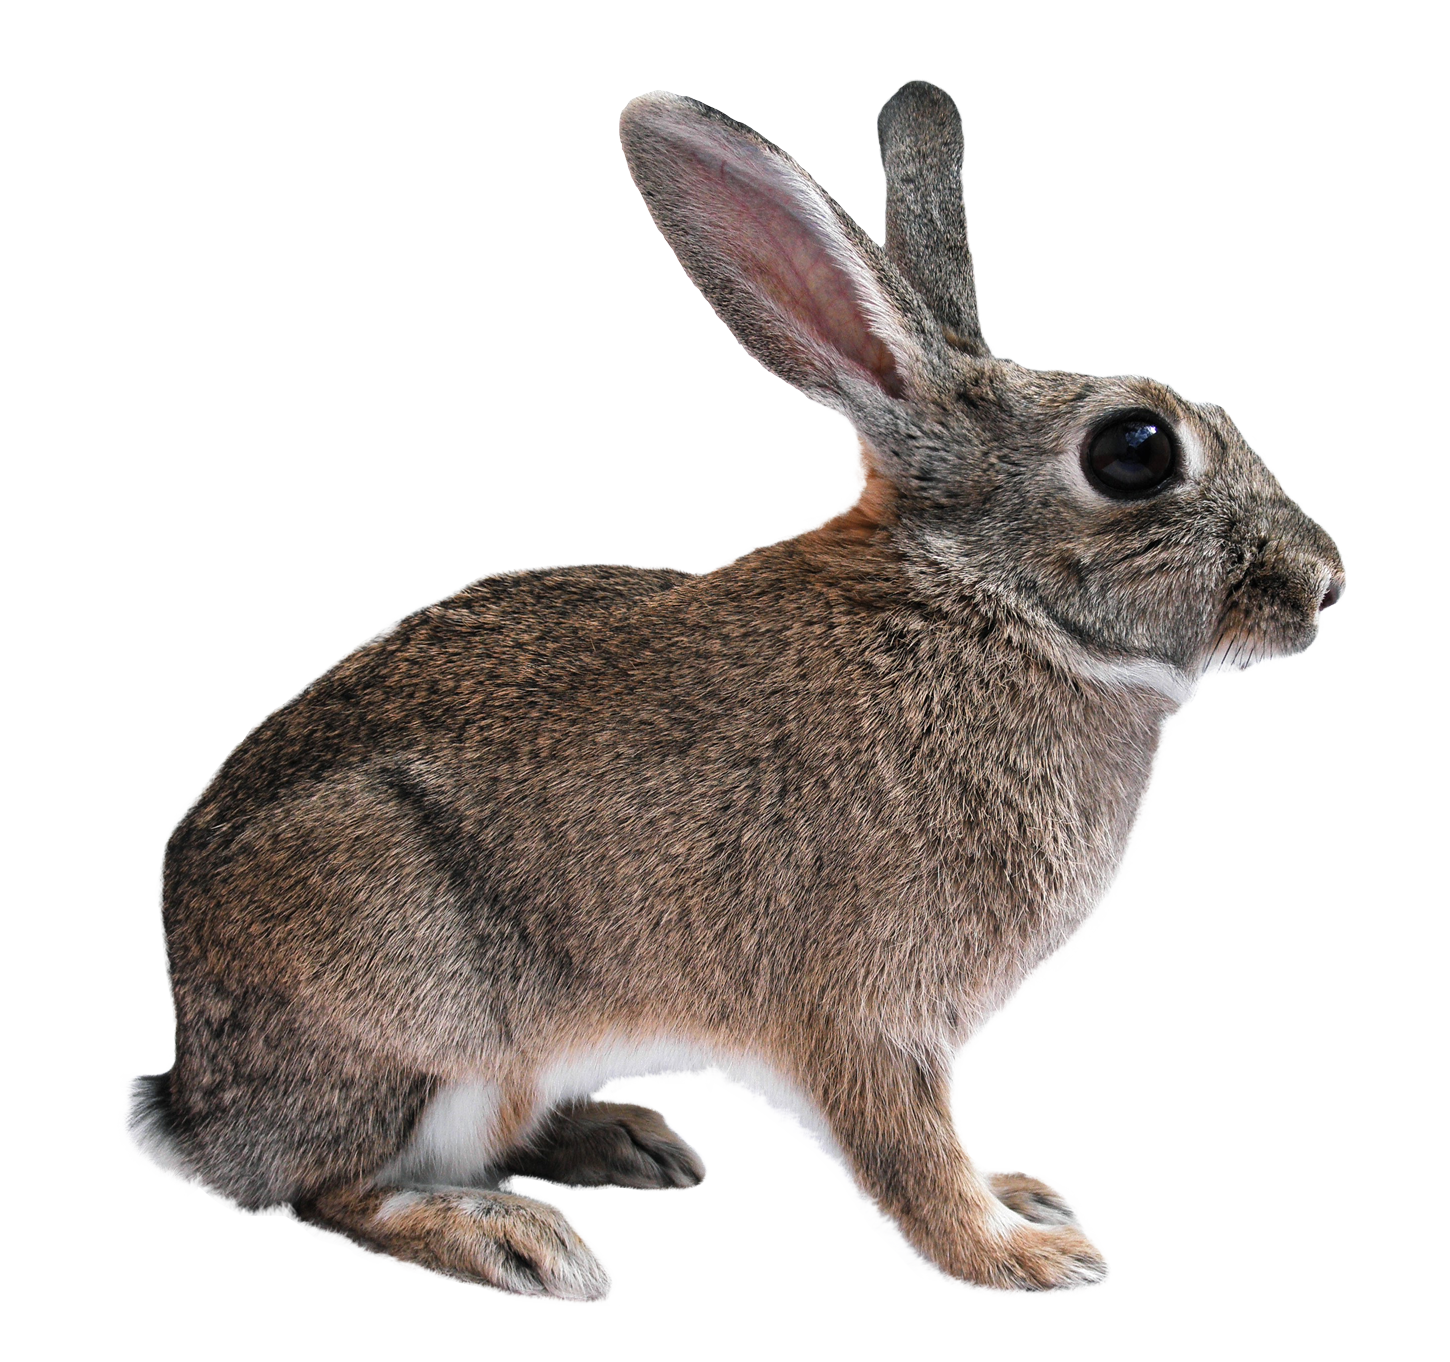 Animal png. Images pngpix rabbit transparent